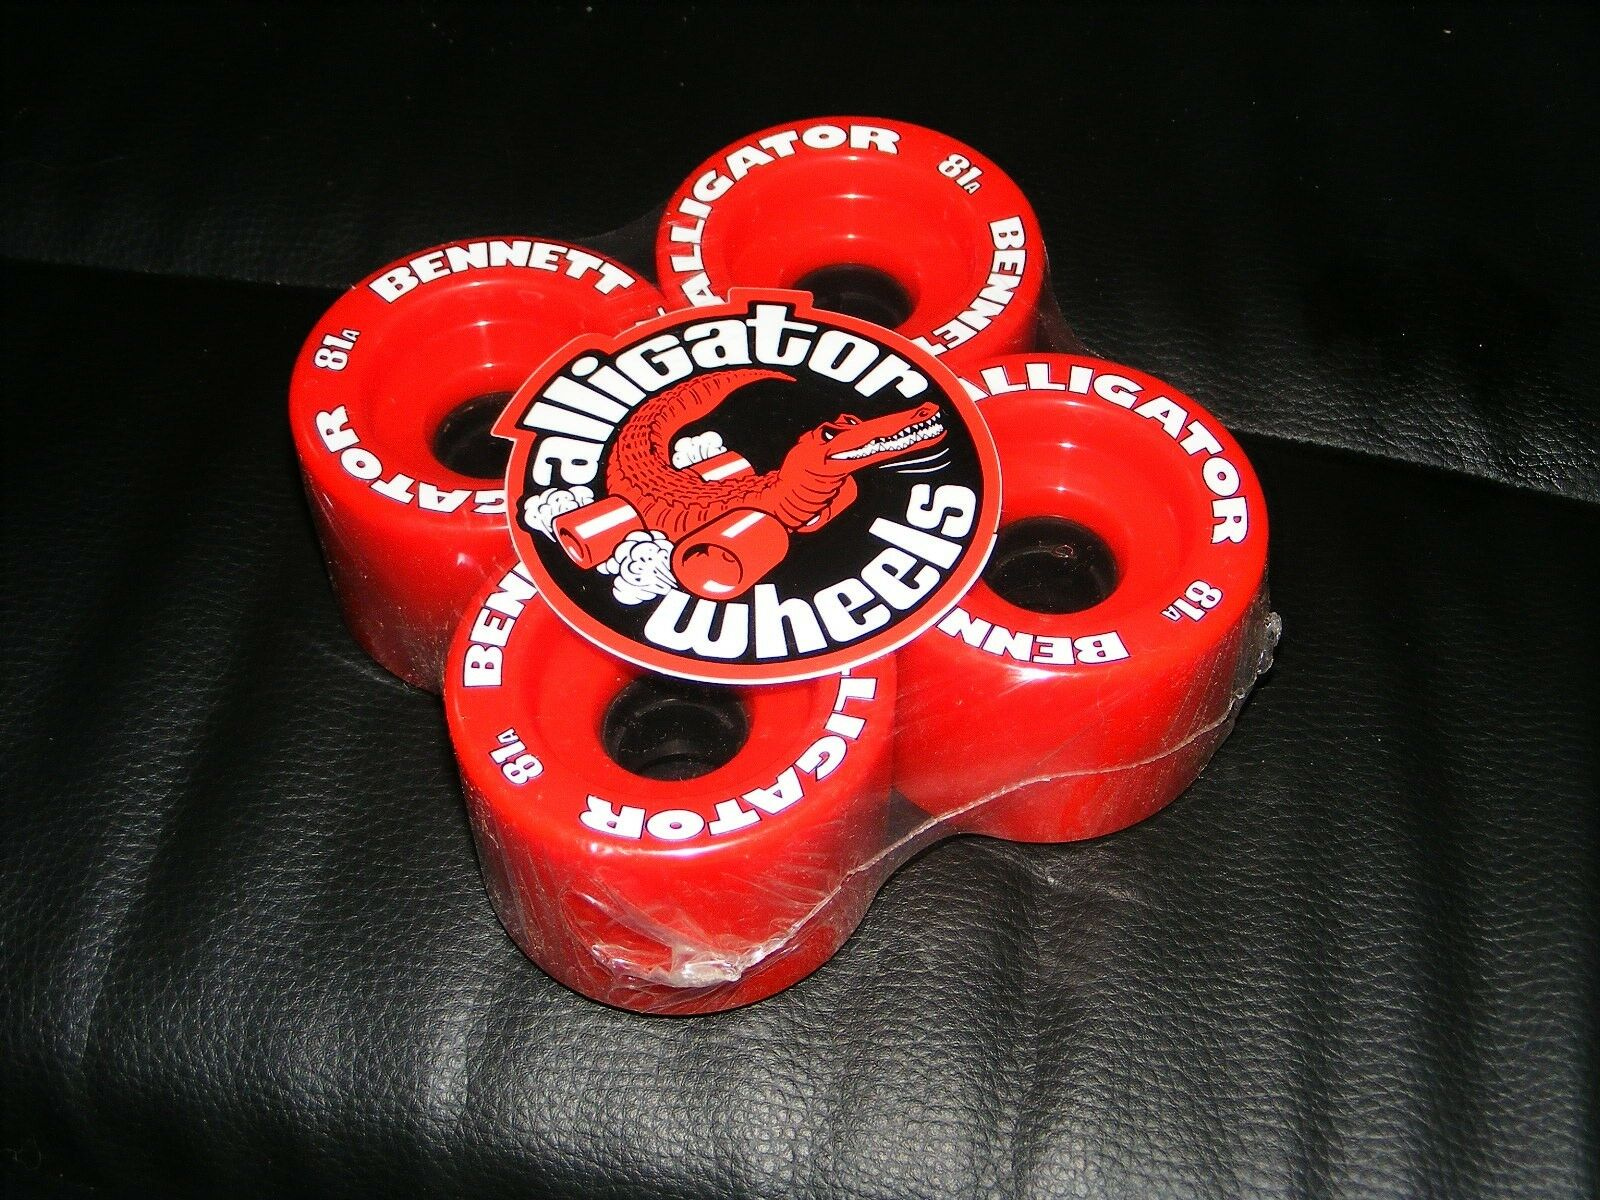 Bennett Alligator Longboard Wheels 71mm 81a Super Fast Great Grip Slalom Wheels